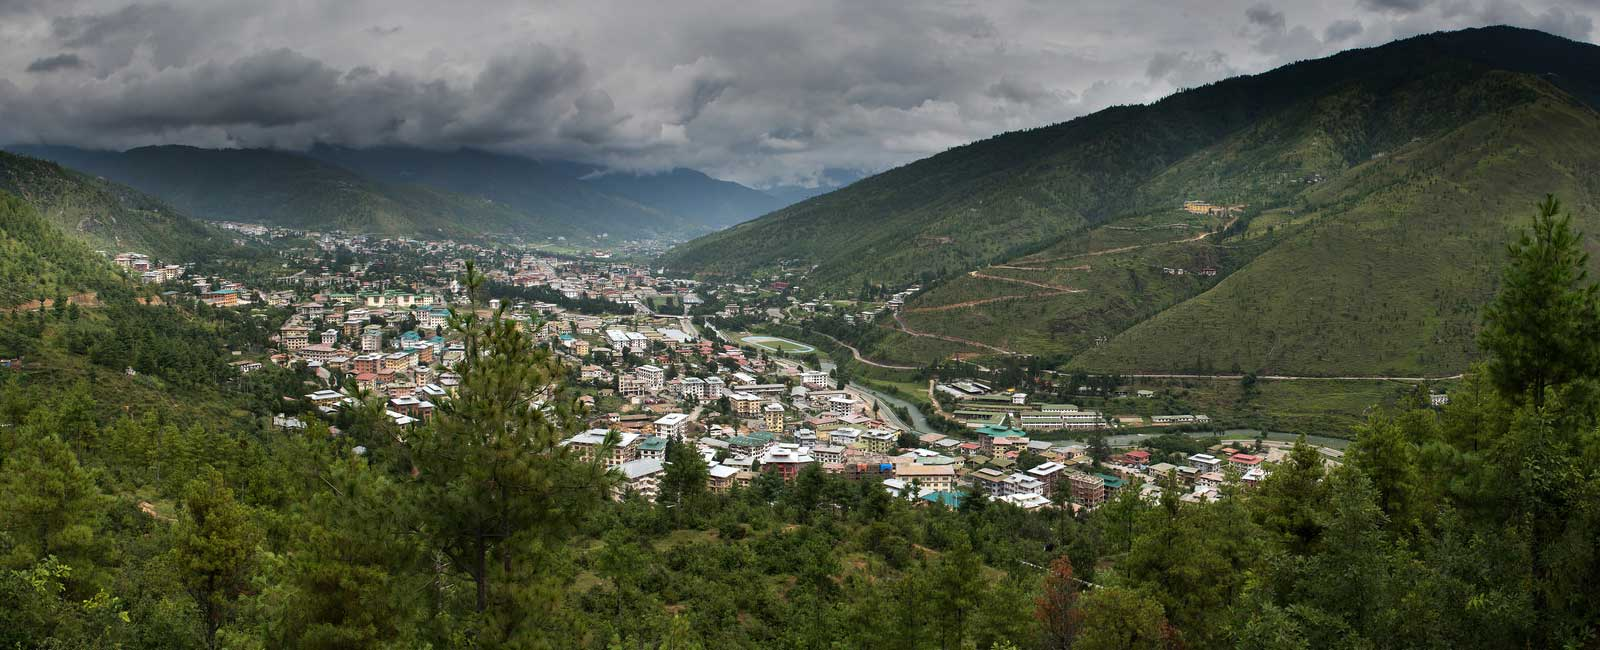 Bhutan Tour with Day Hikes